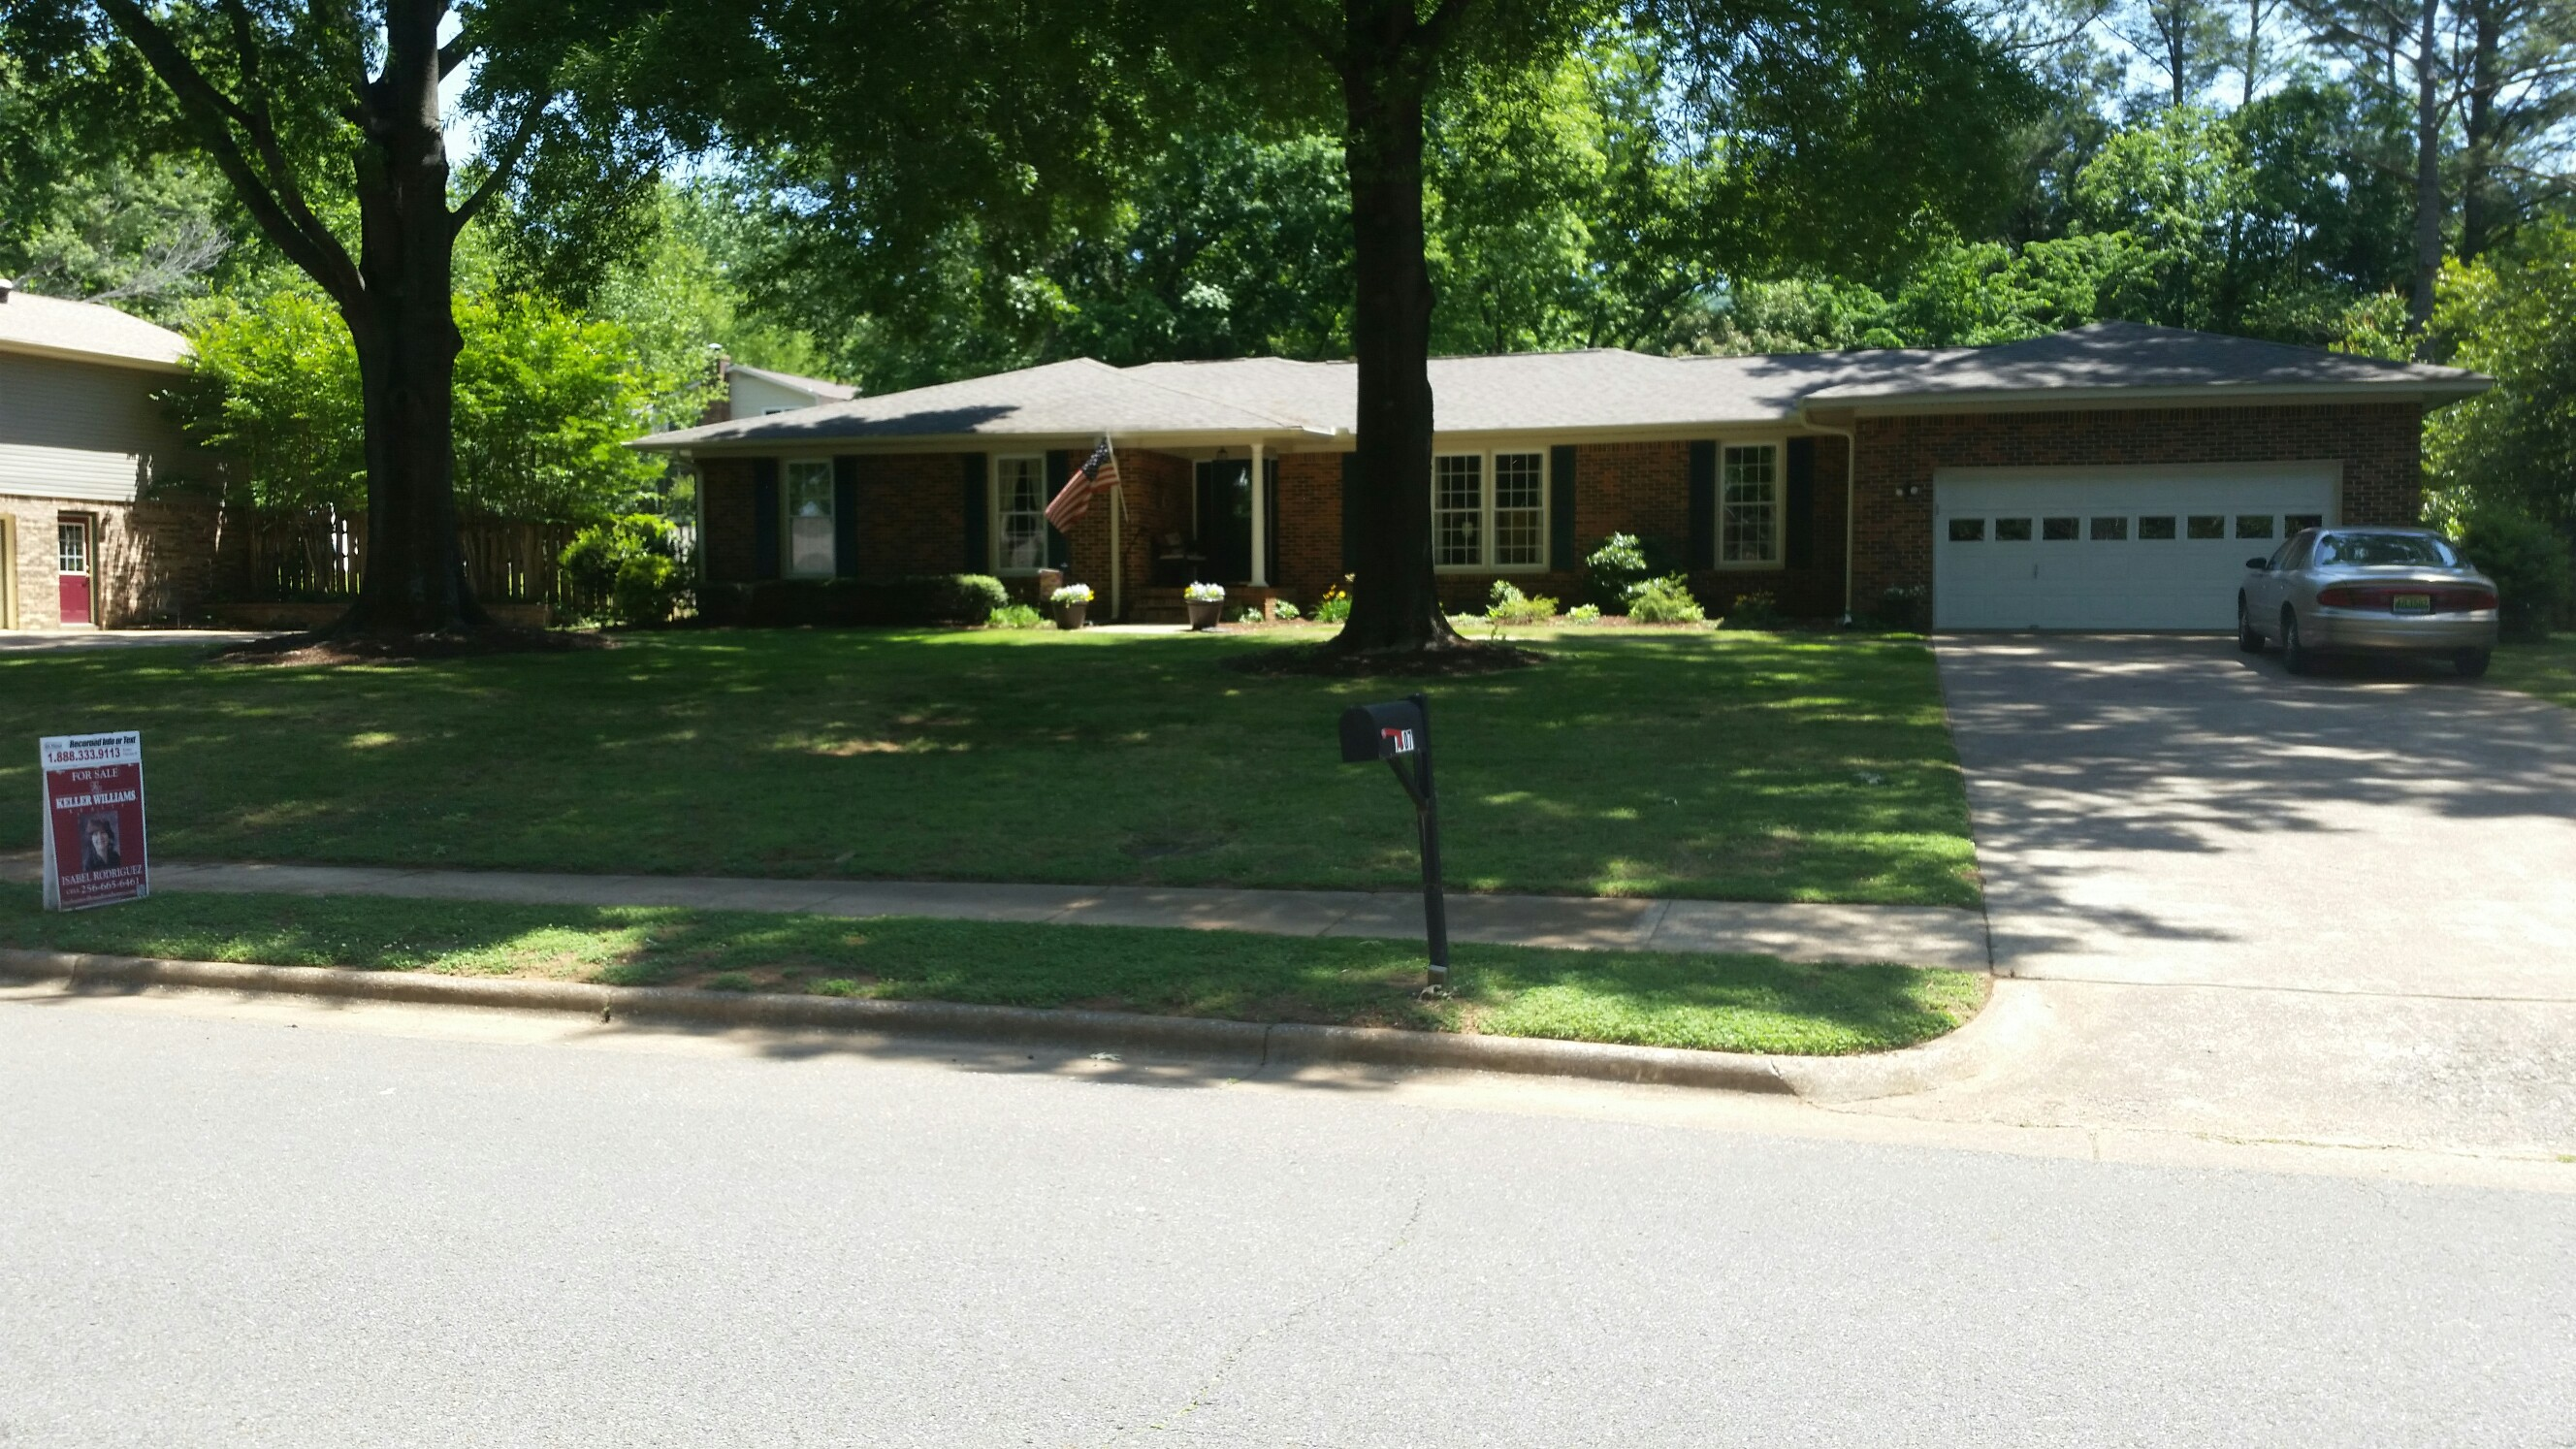 Harrell lawn care services llc huntsville alabama al for Local lawn care services